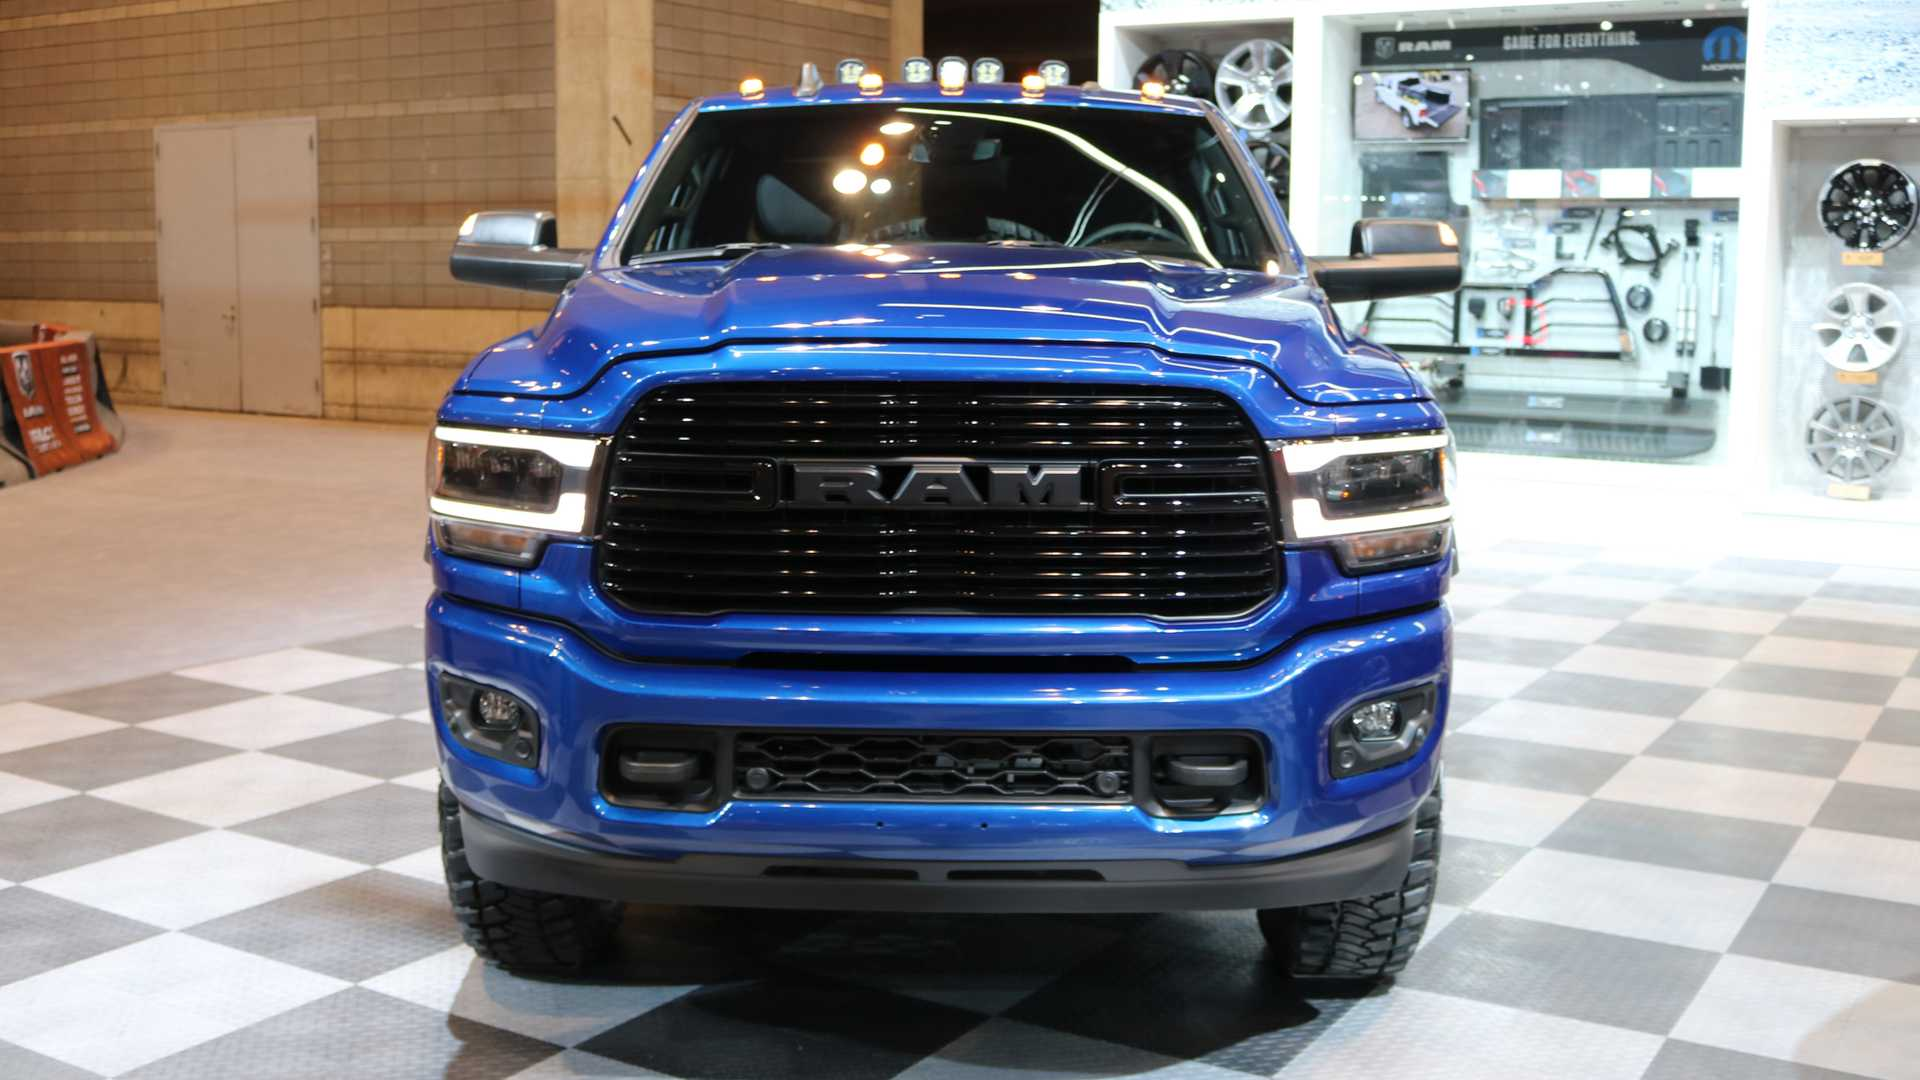 Mopar's 2019 Ram 2500 Debuts With Bevy Of Upgrades In Chicago